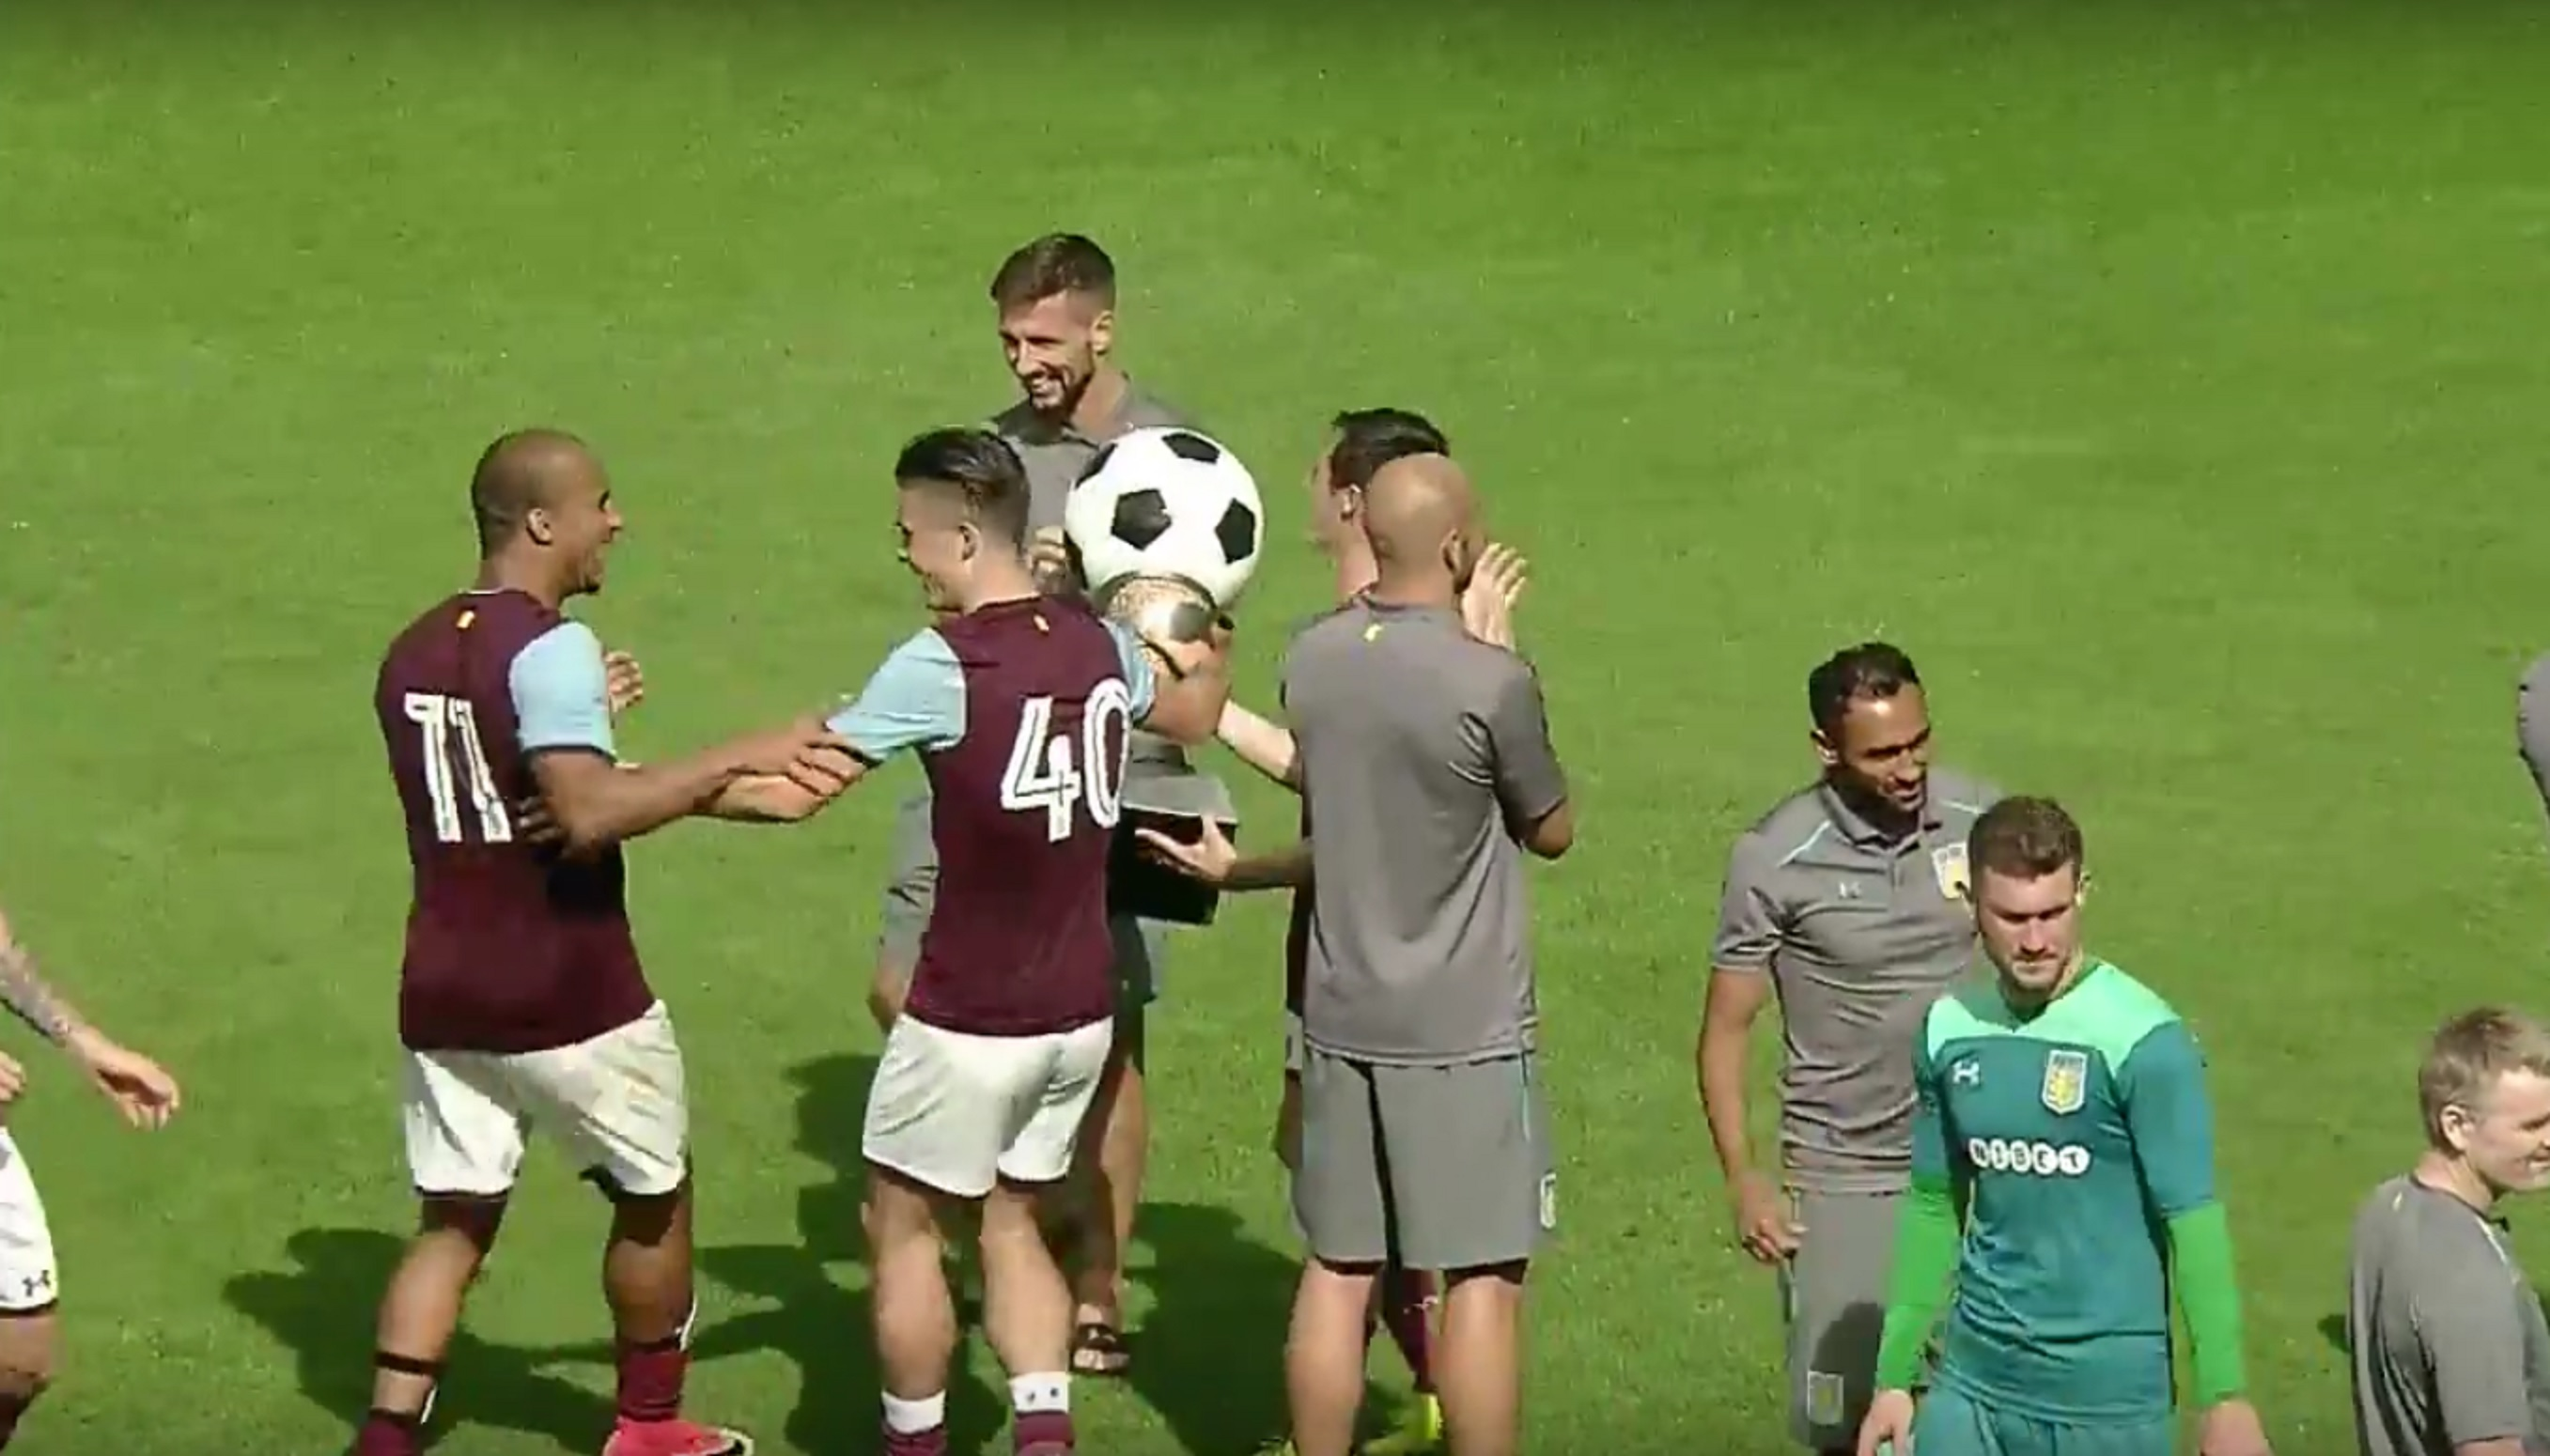 Aston Villa footballers celebrate winning the Cup of Traditions